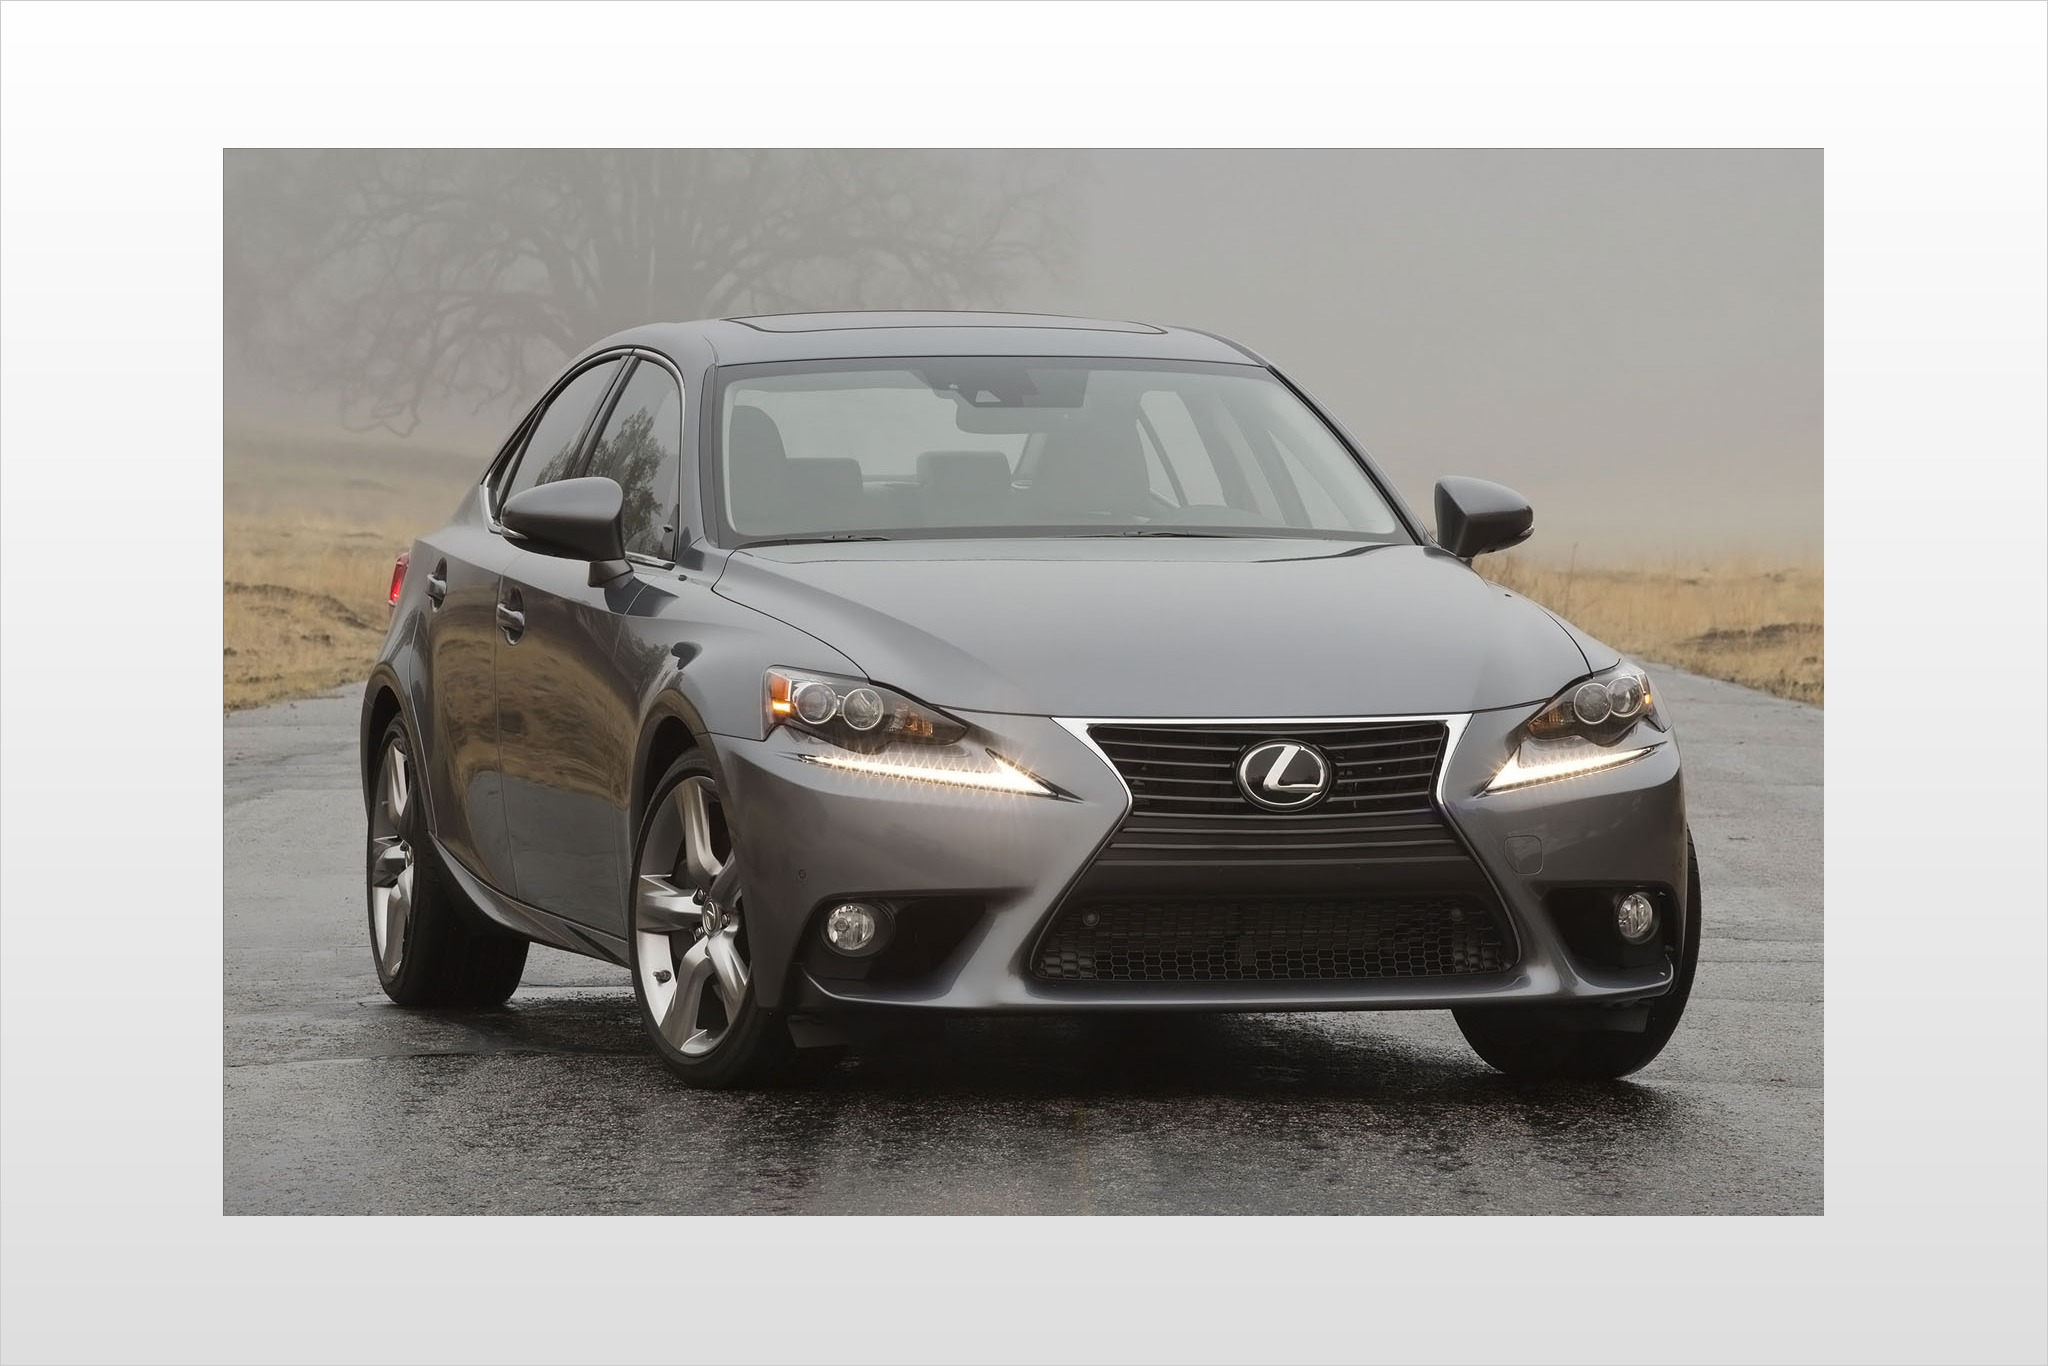 2014 Lexus IS 350 Information and photos ZombieDrive